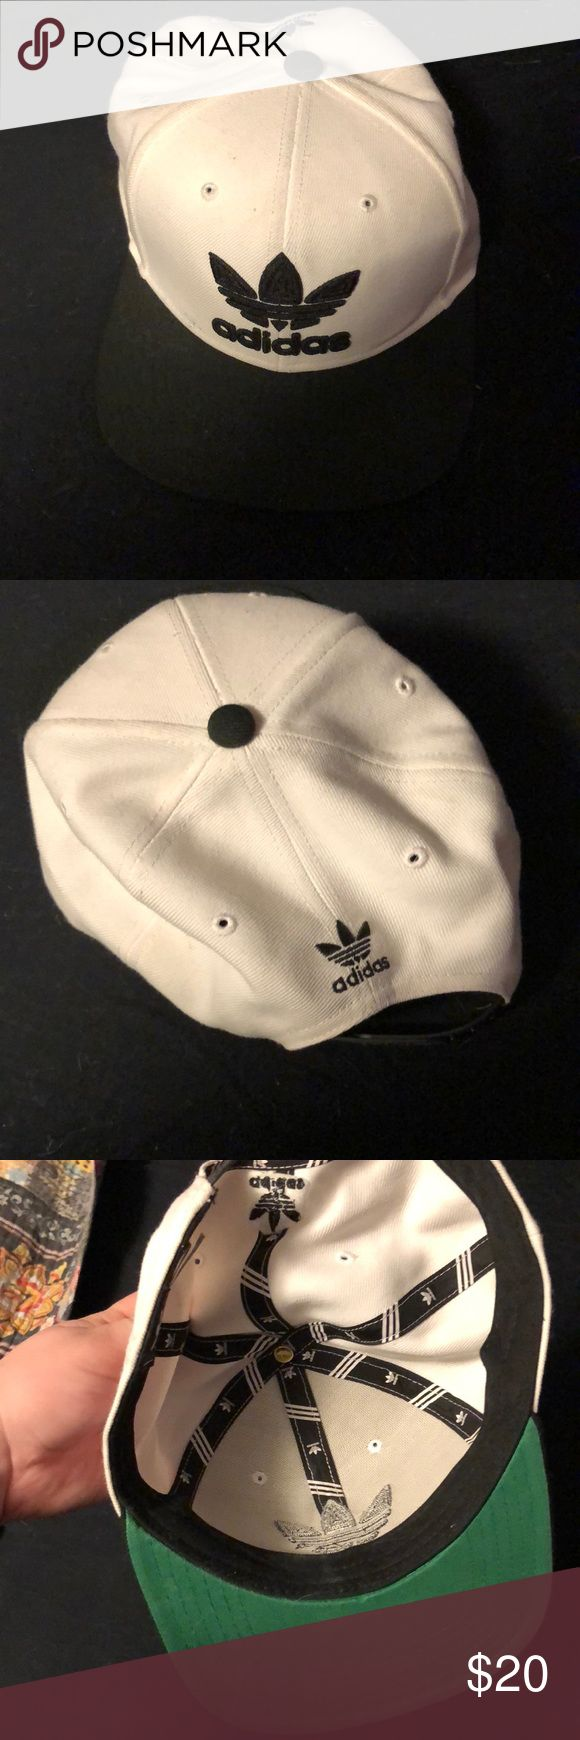 Adidas hat Adidas baseball hat. Perfect condition, only worn once. No fading/marks/etc. adidas Accessories Hats